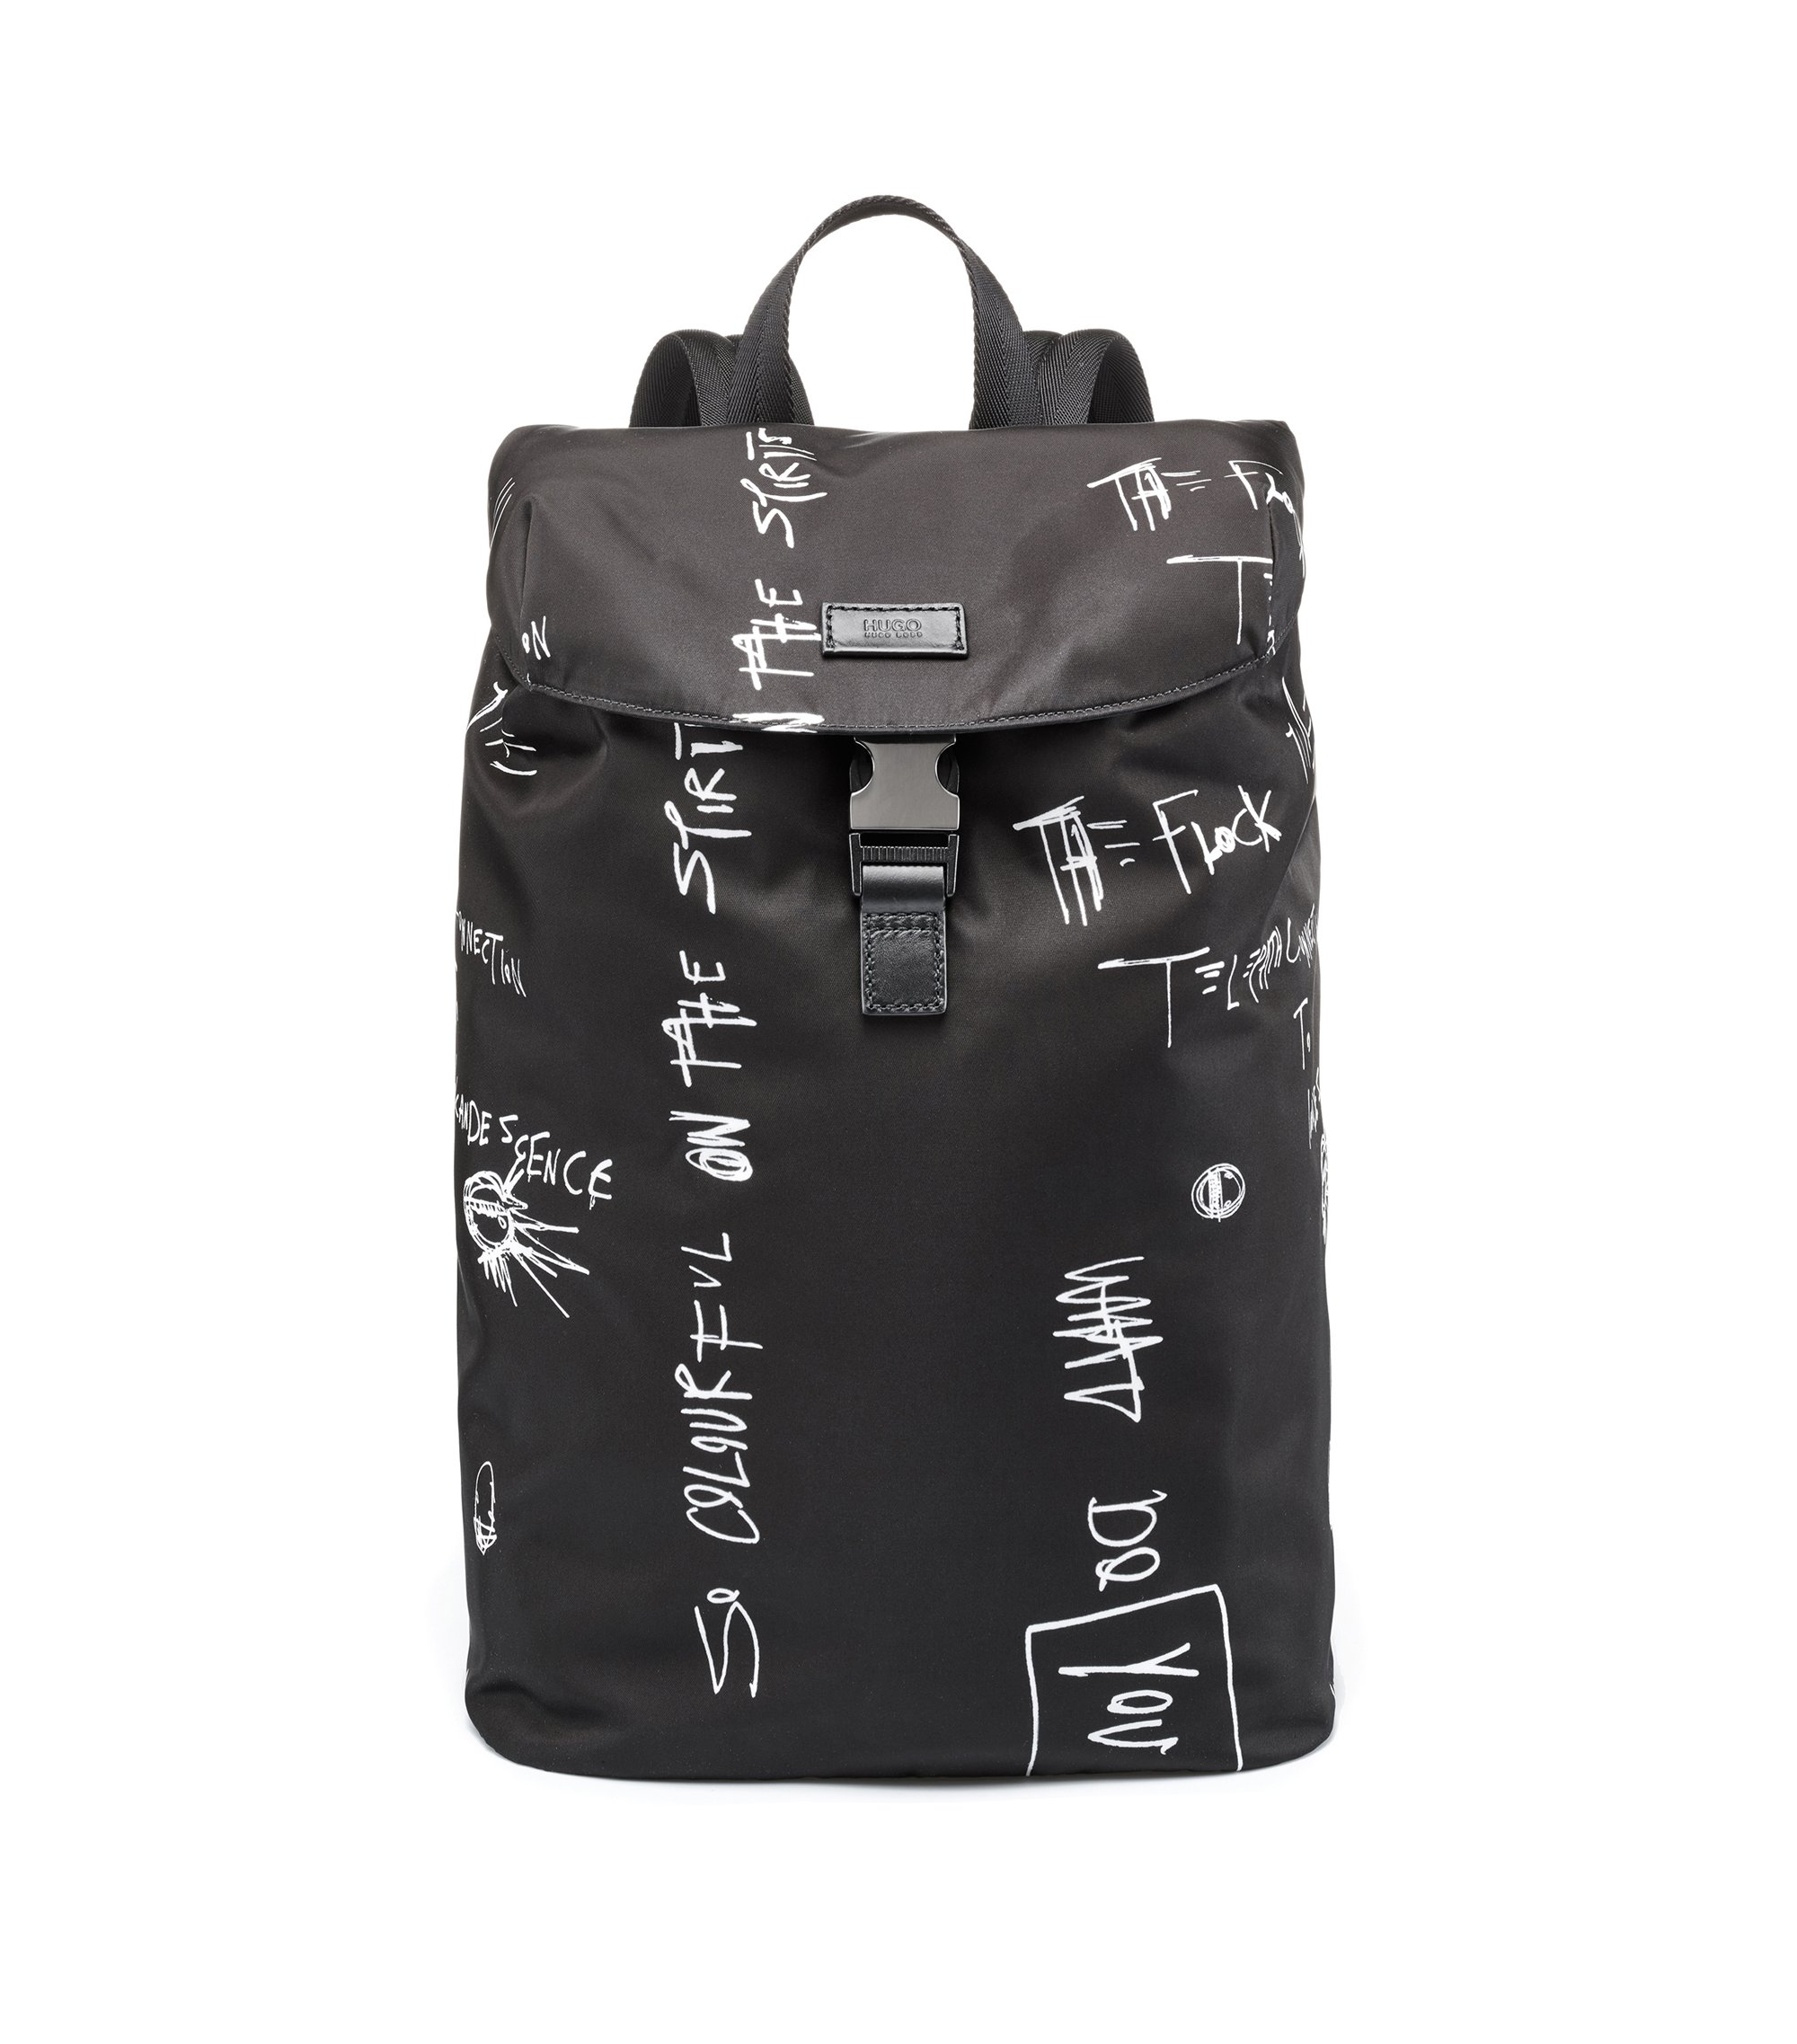 Graffiti-print backpack in nylon gabardine with laptop pocket, Black